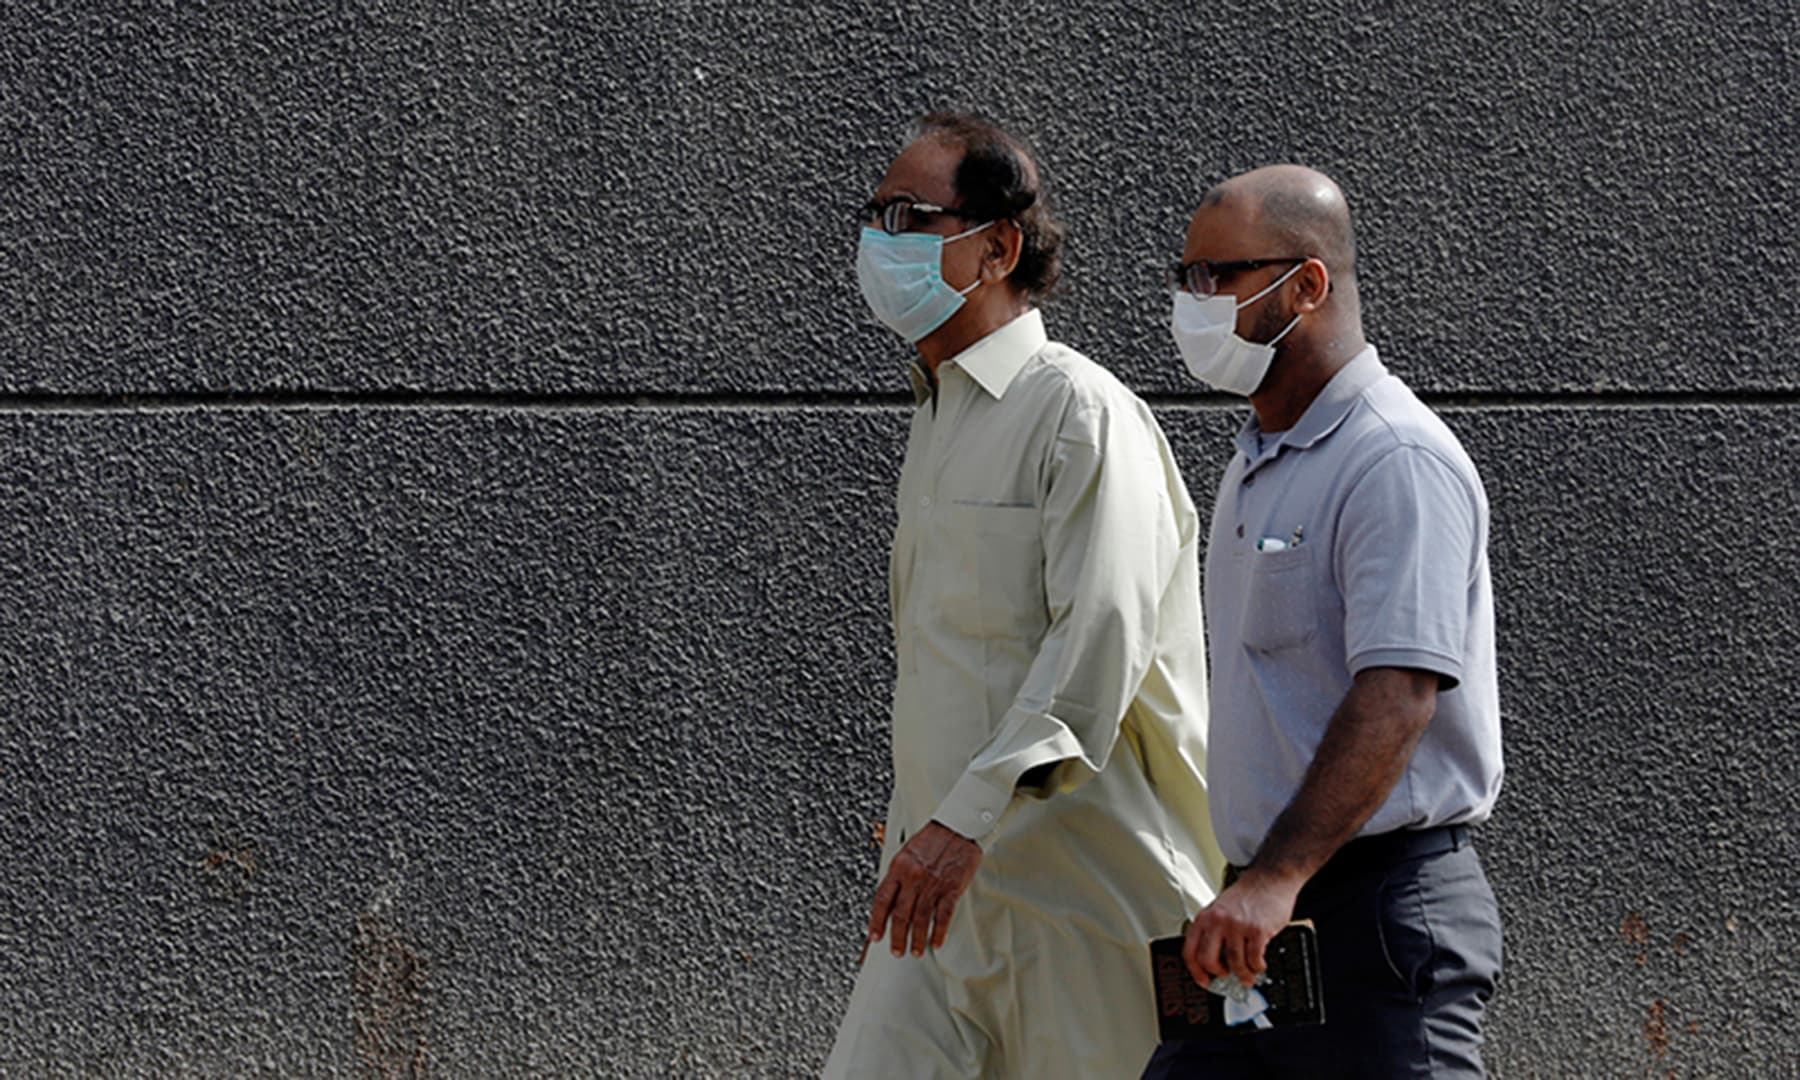 Men walk with face masks as a preventive measure along a sidewalk in Karachi, Pakistan on February 28. — Reuters/File